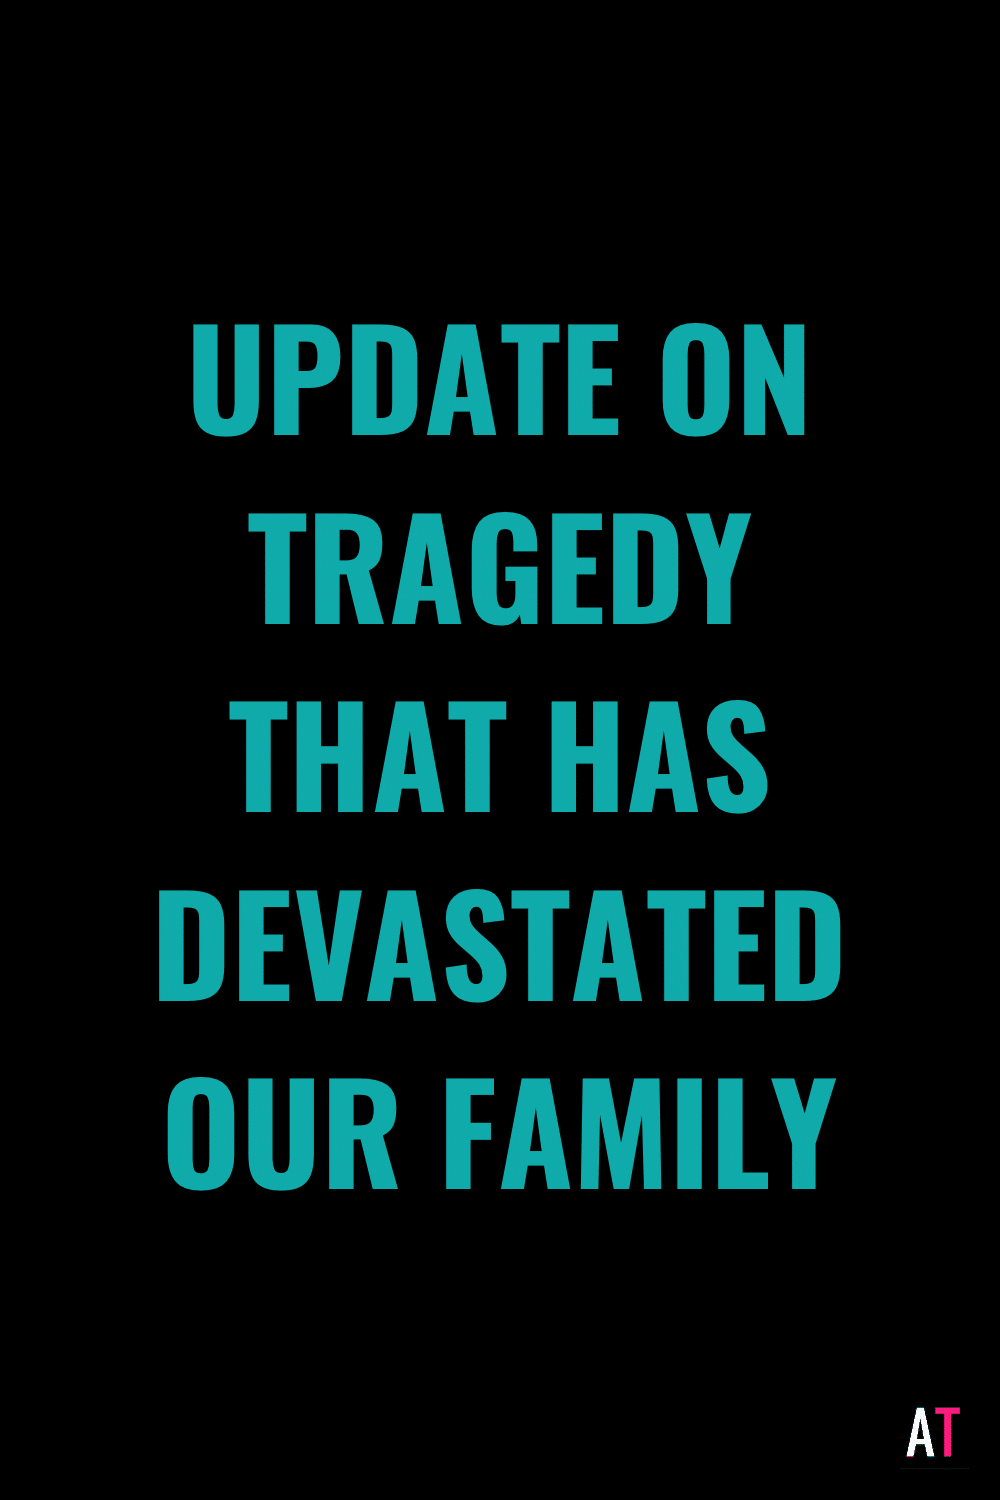 PSP 204: Update on Tragedy that has Devastated Our Family